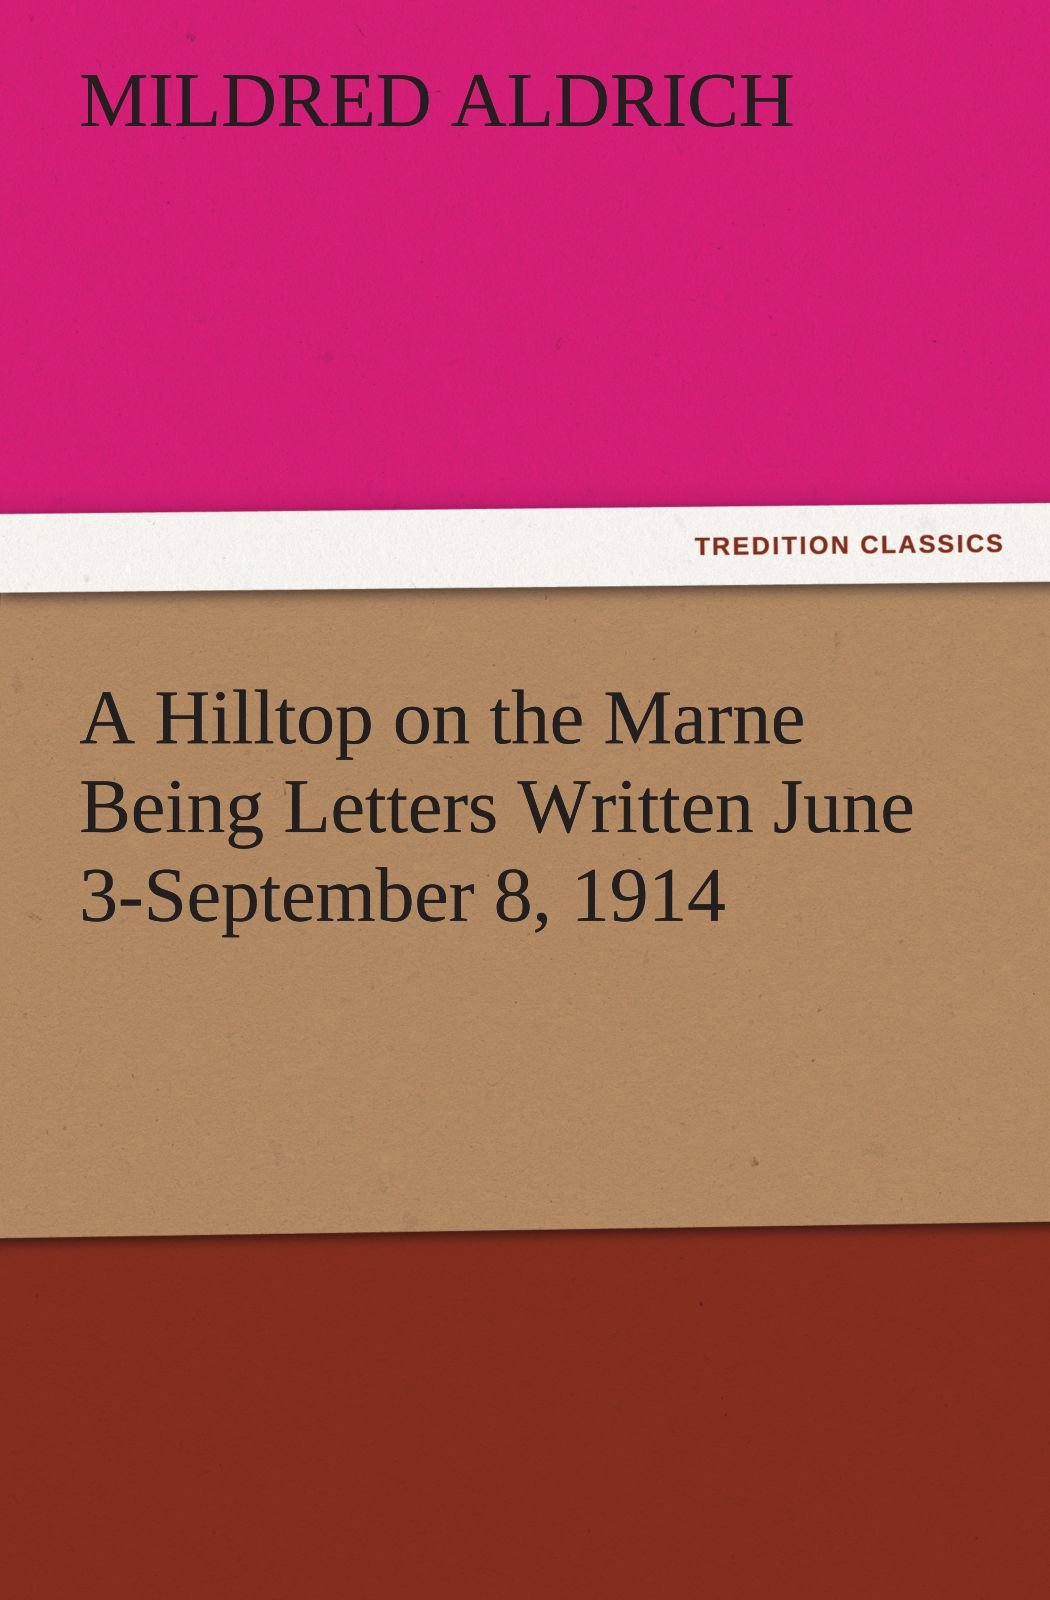 A Hilltop on the Marne Being Letters Written June 3-September 8, 1914 (TREDITION CLASSICS)